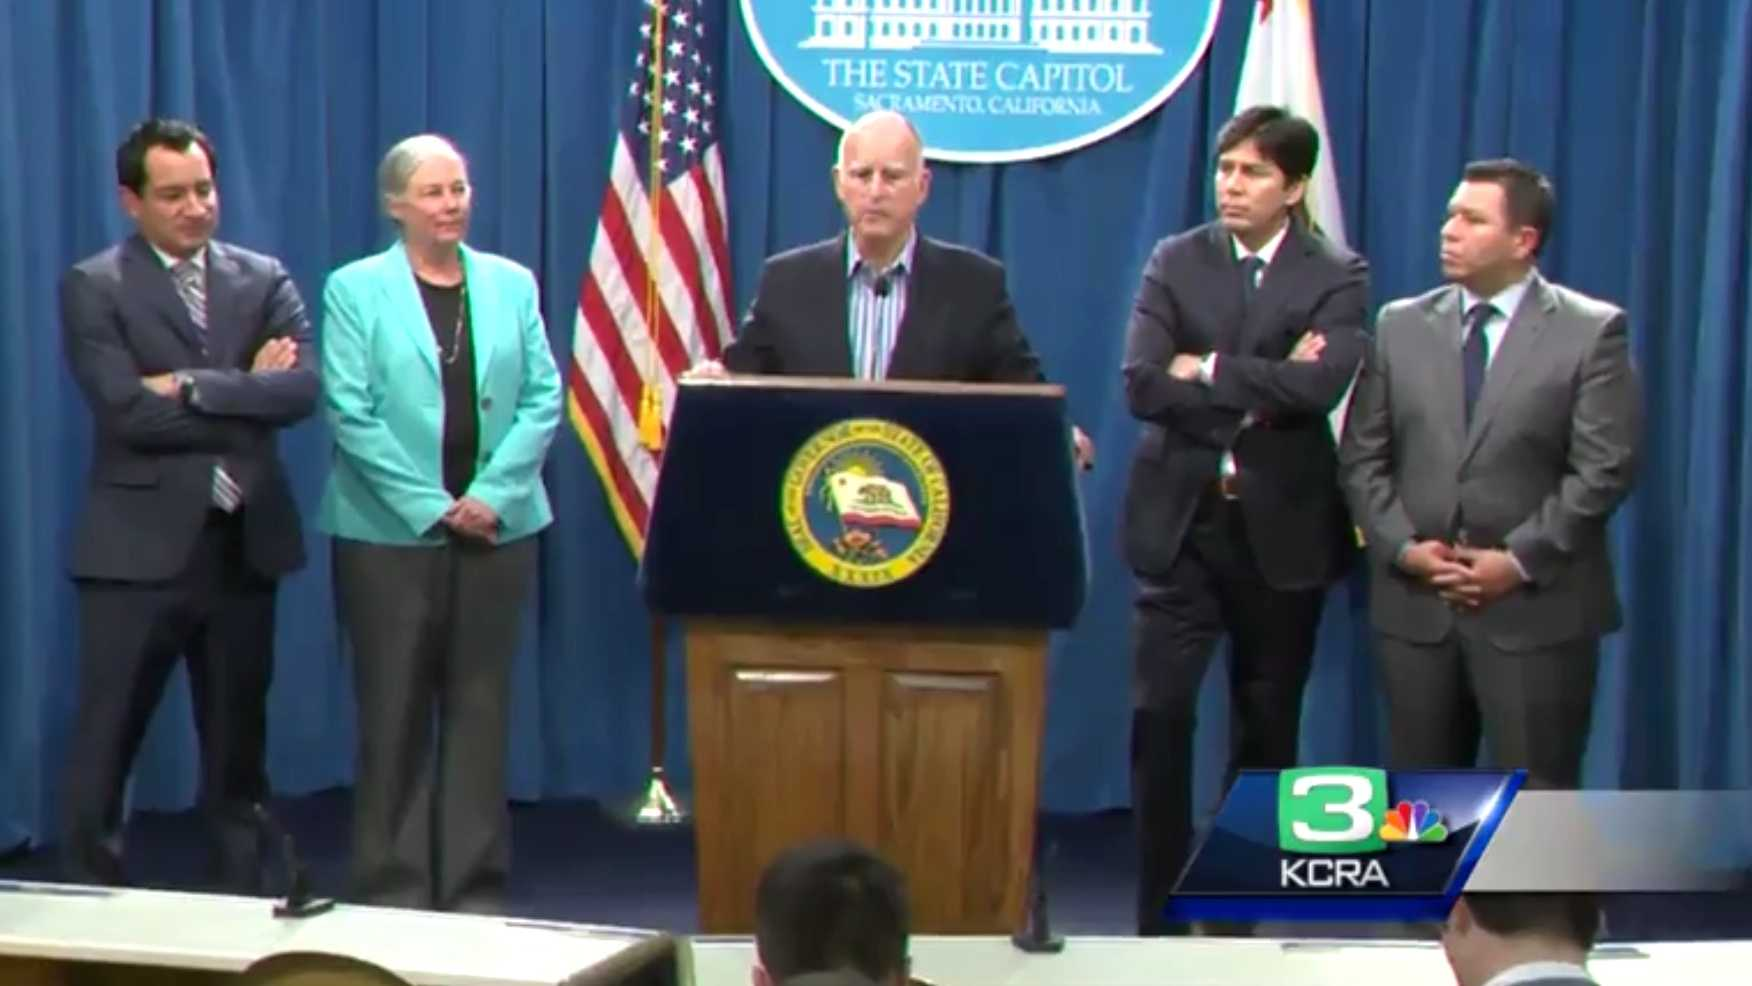 Gov. Jerry Brown was joined by other California lawmakers during a news conference Wednesday, Aug. 24, 2016, as they announced the passage of a bill extending California's landmark climate change law. Brown said when the bill reaches his desk, he will sign it.